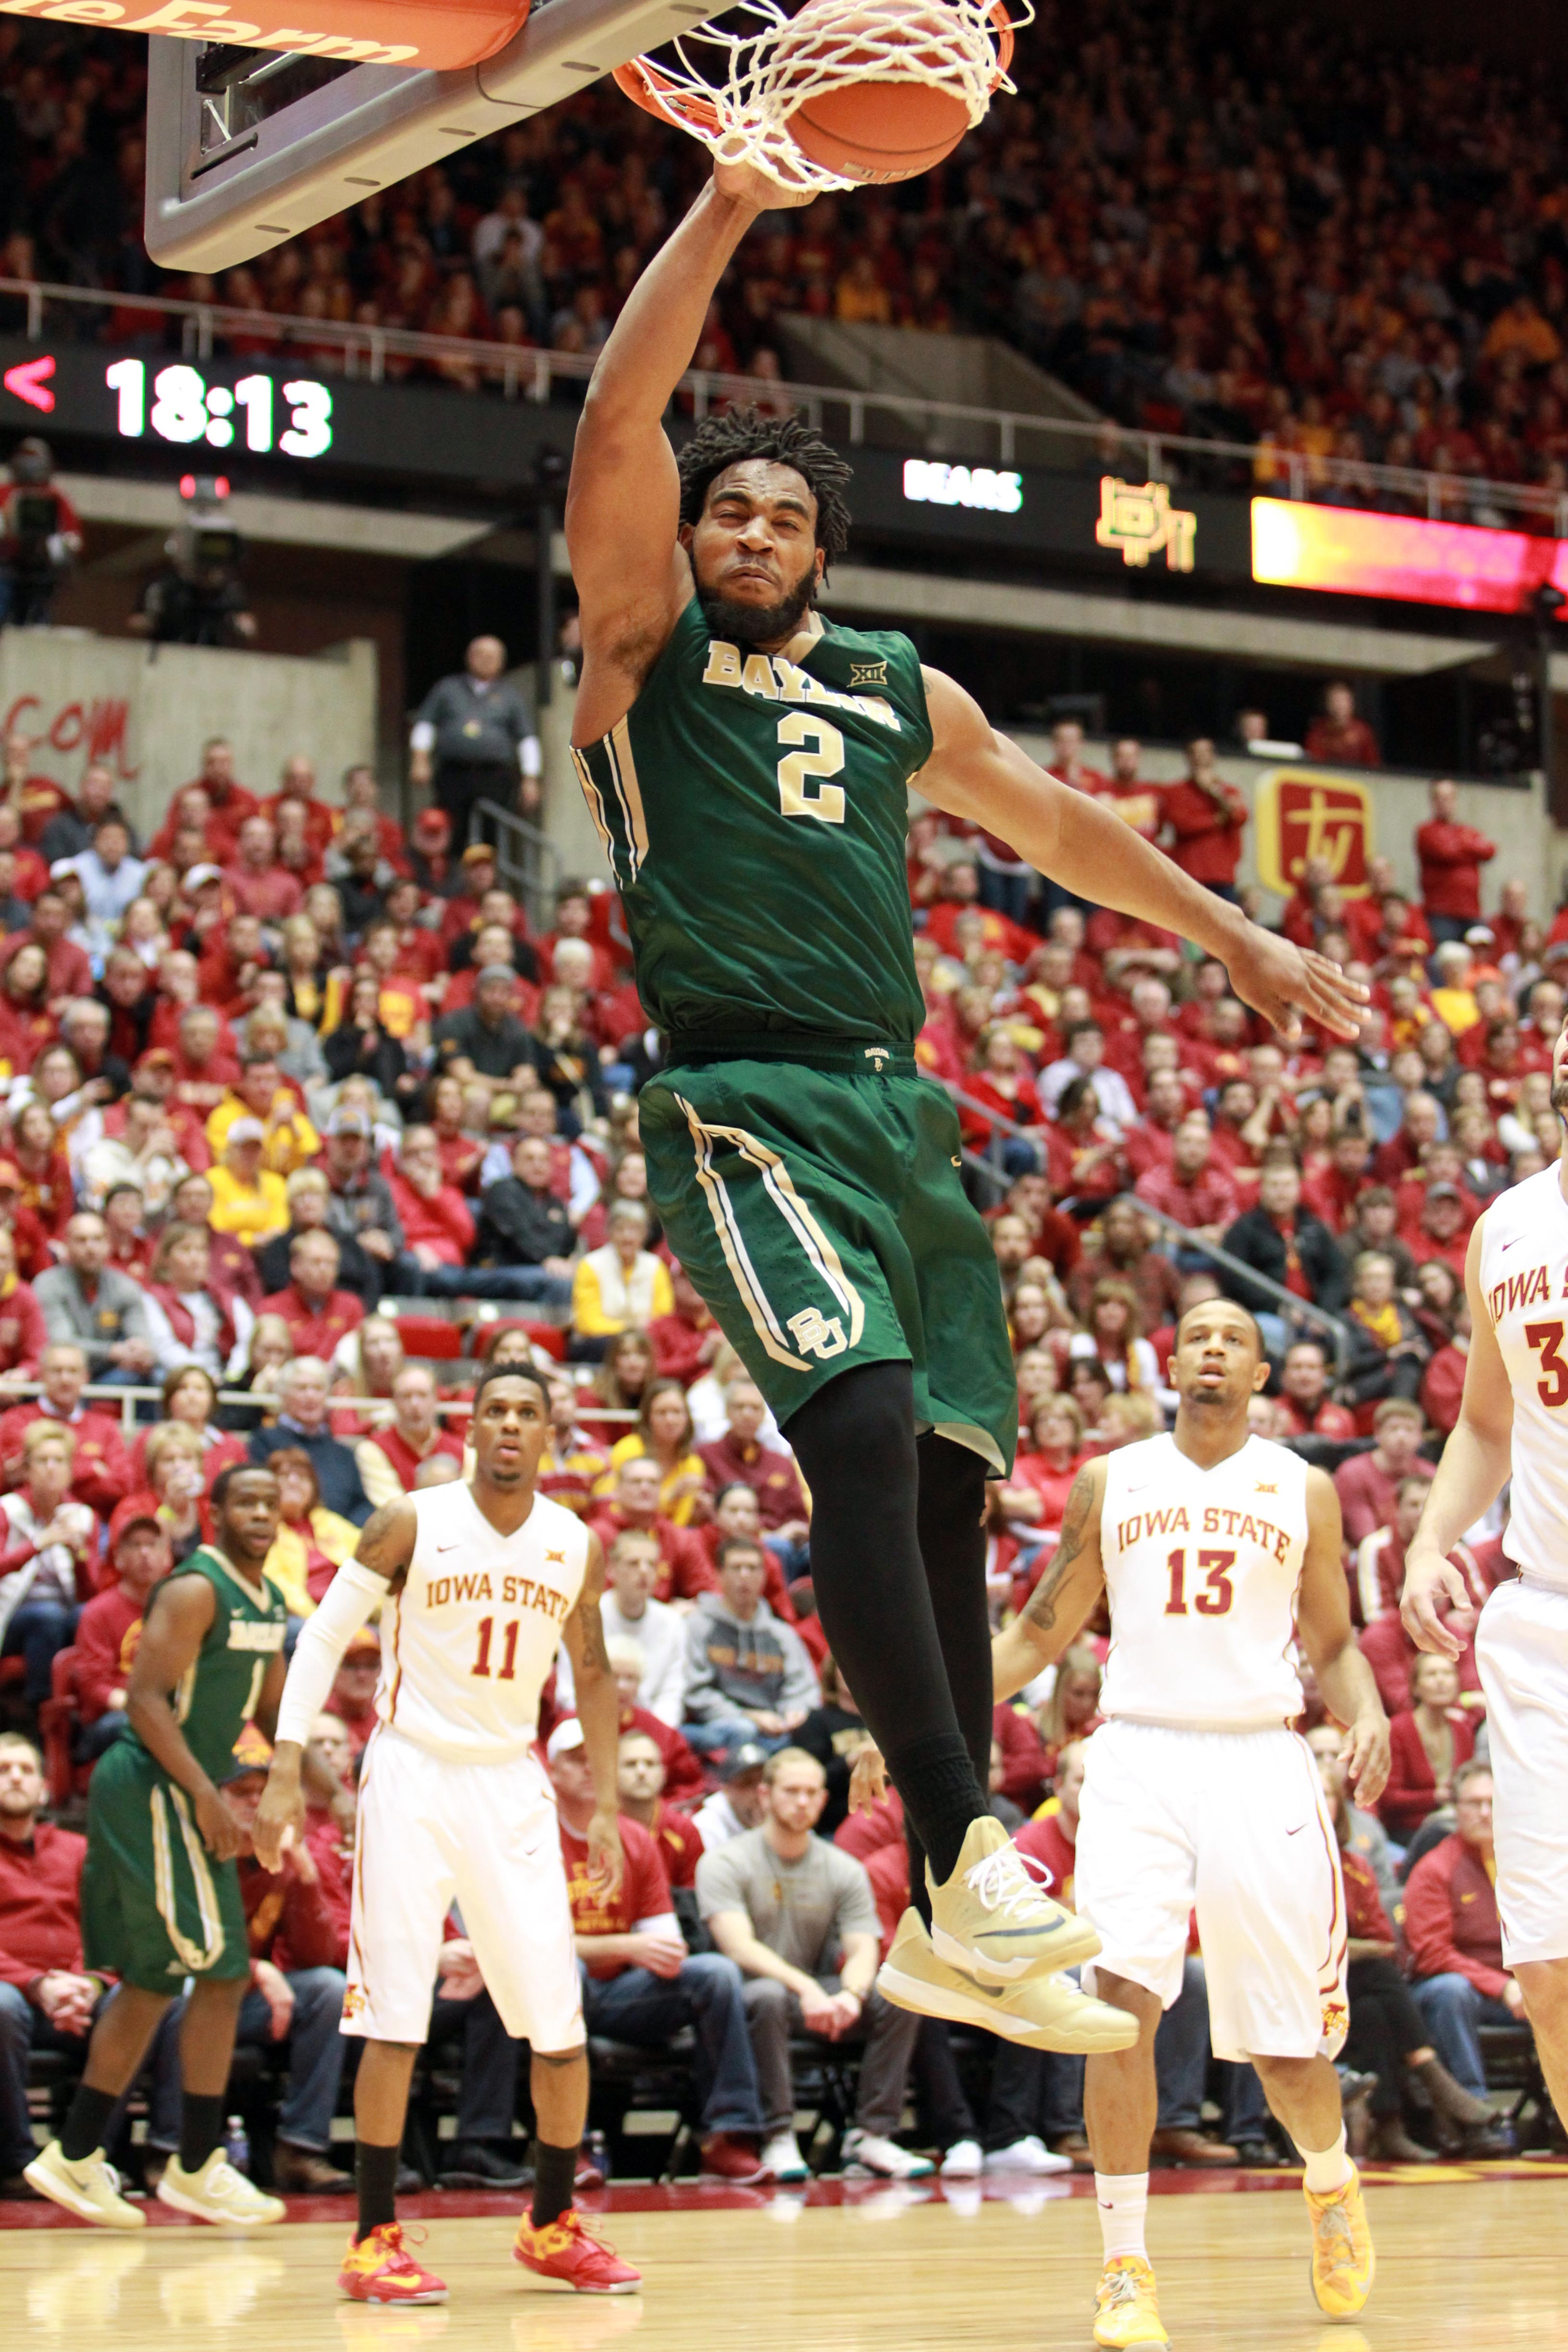 Feb 25, 2015; Ames, IA, USA; Baylor Bears forward Rico Gathers (2) dunks against the Iowa State Cyclones at James H. Hilton Coliseum. (Reese Strickland-USA TODAY Sports)